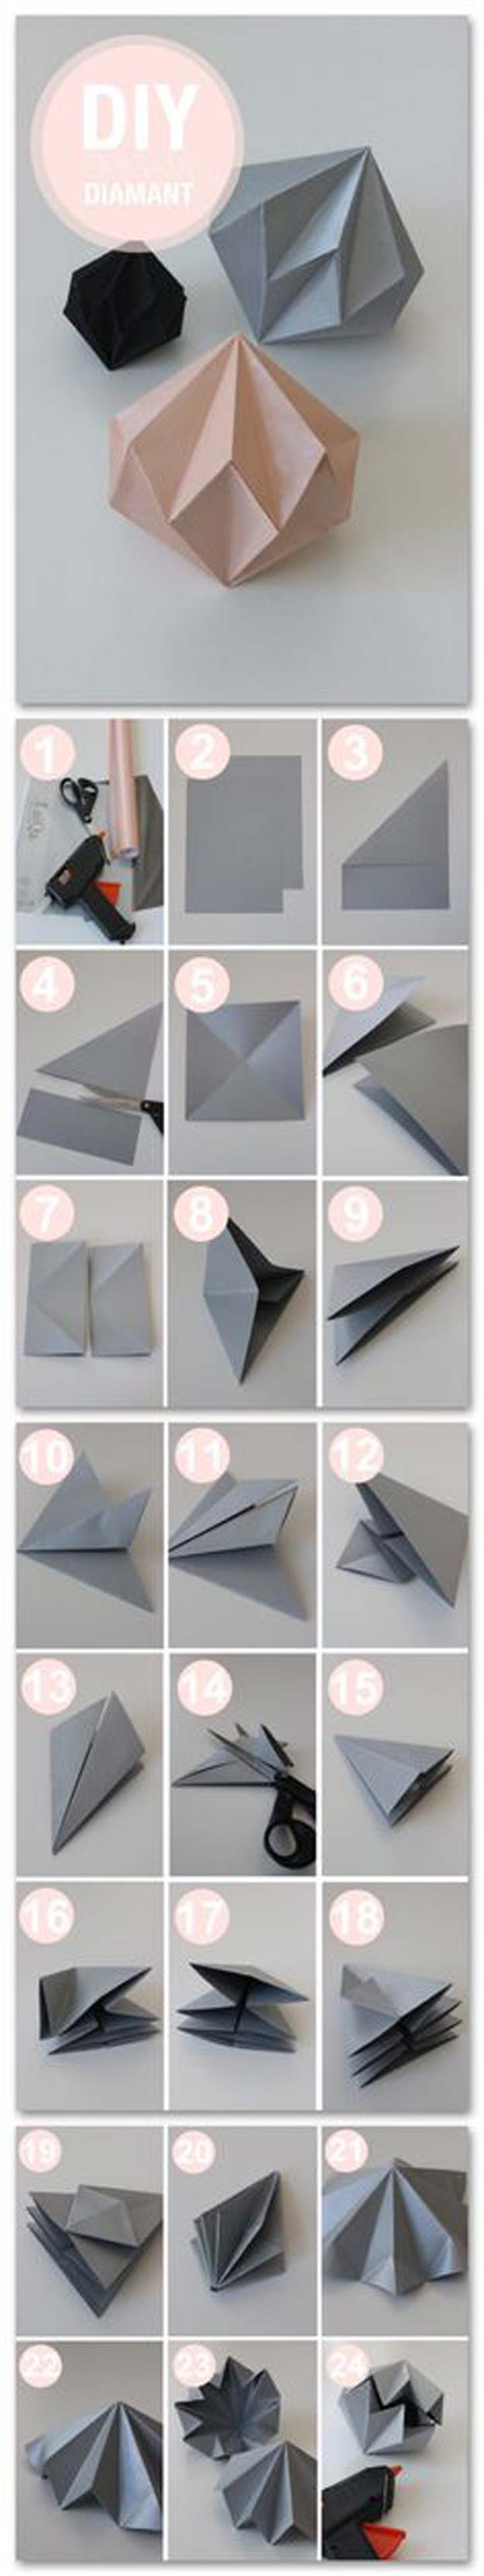 Best Origami Tutorials - Diamant - Easy DIY Origami Tutorial Projects for With Instructions for Flowers, Dog, Gift Box, Star, Owl, Buttlerfly, Heart and Bookmark, Animals - Fun Paper Crafts for Teens, Kids and Adults #origami #crafts